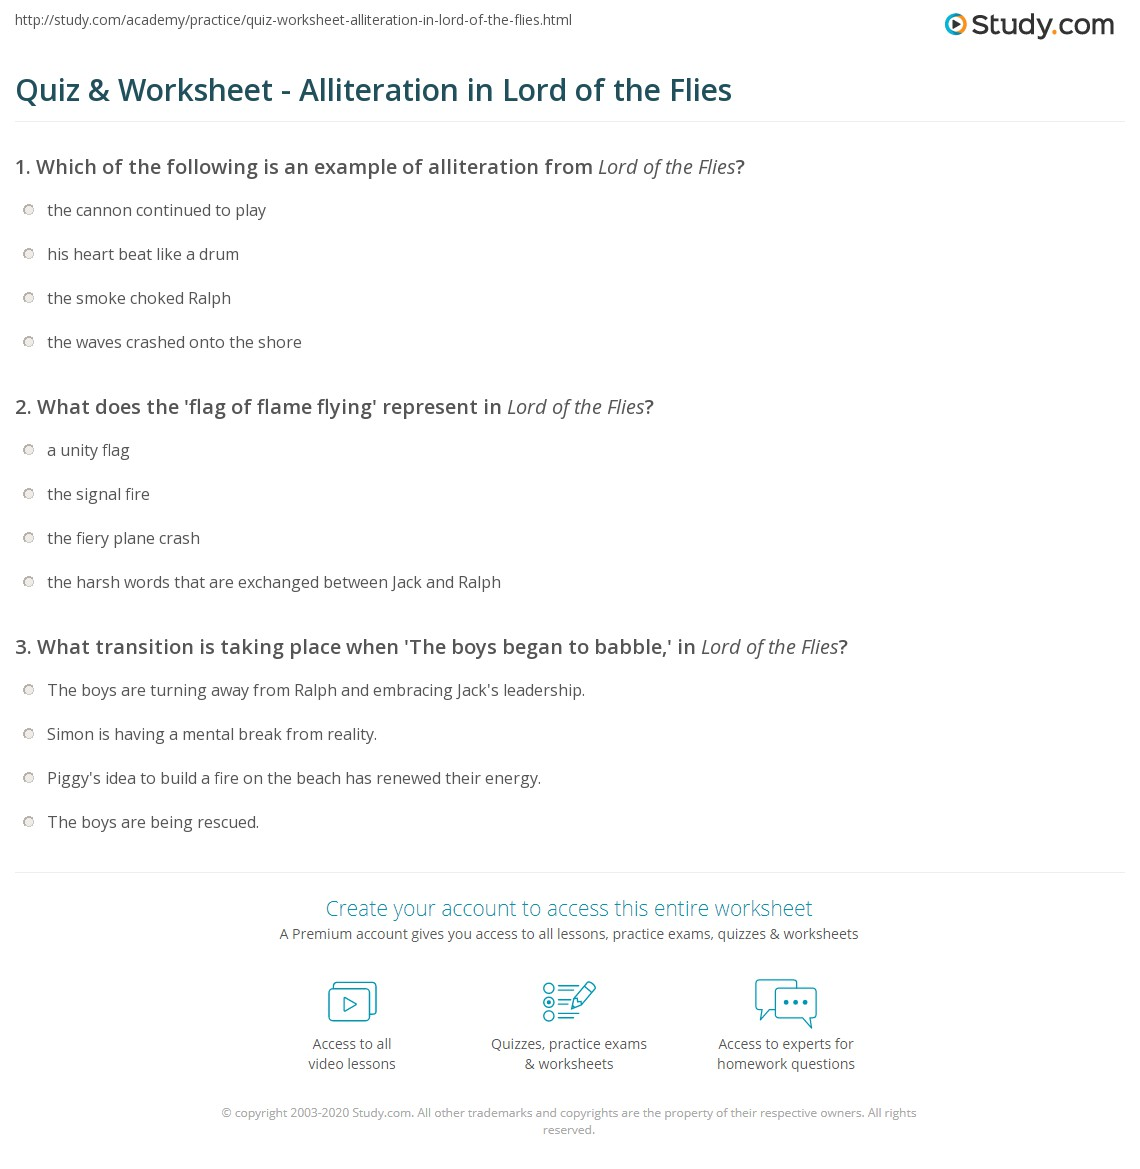 Quiz worksheet alliteration in lord of the flies study what does the flag of flame flying represent in lord of the flies buycottarizona